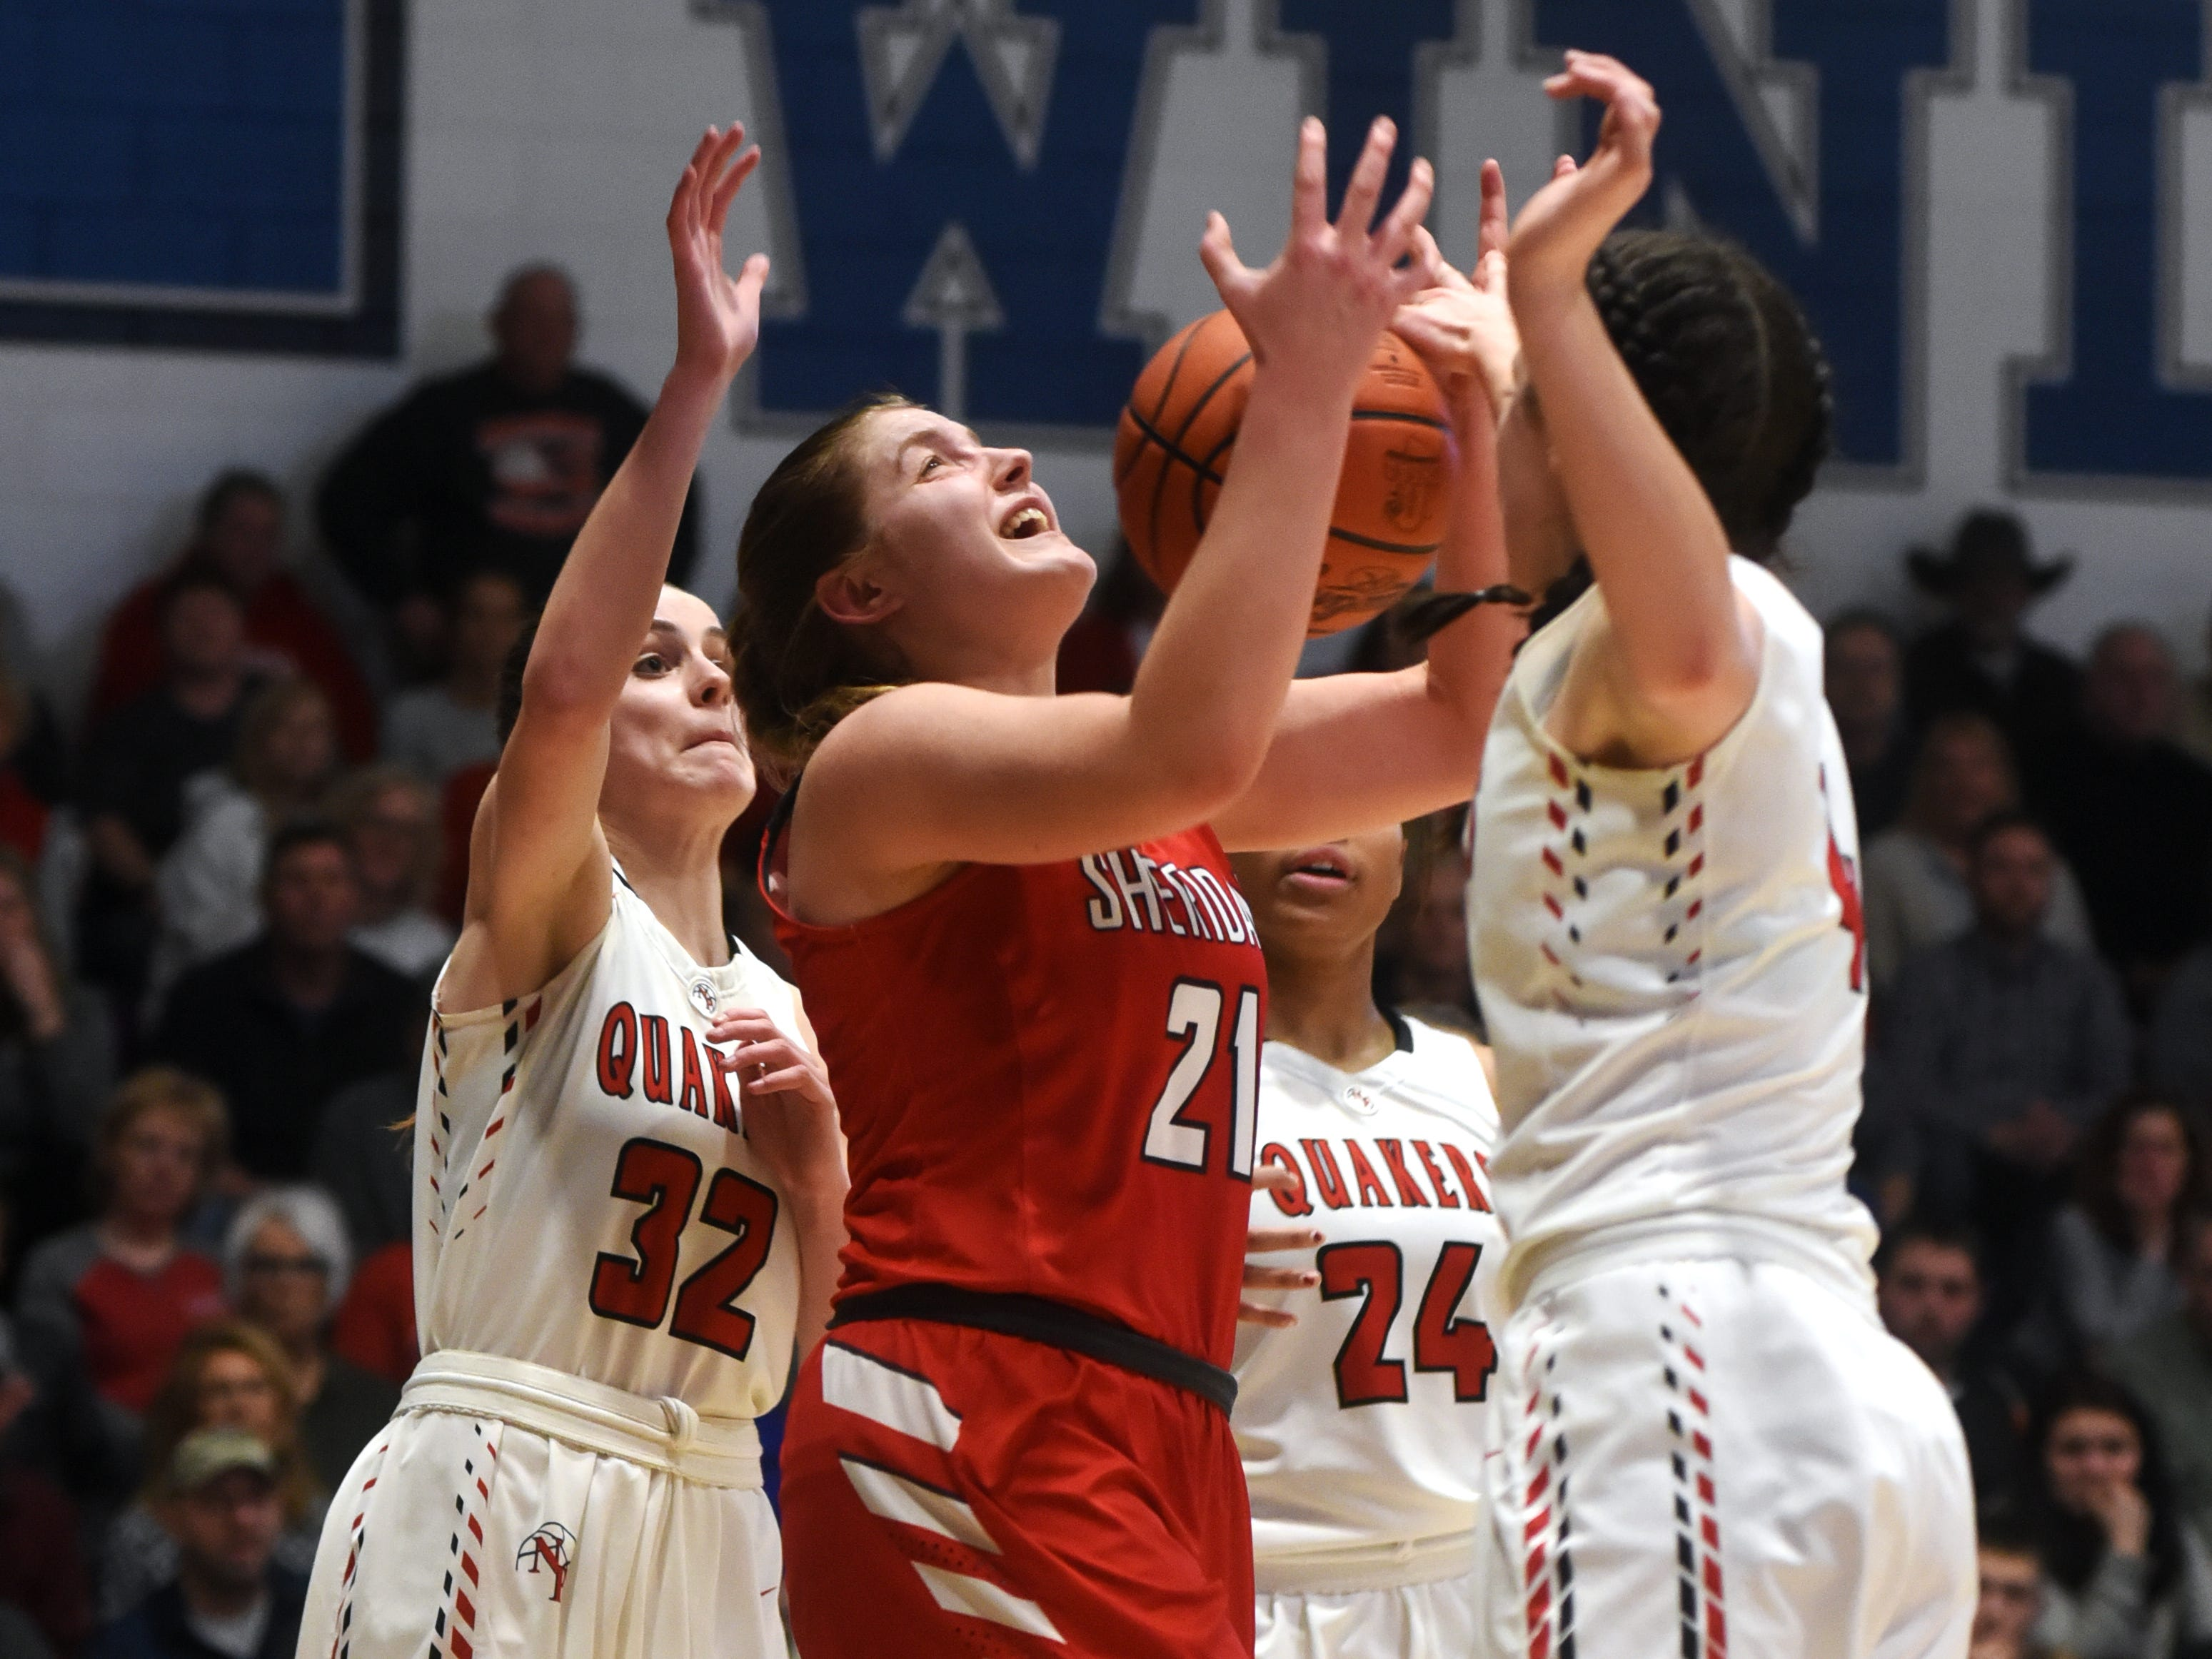 Kendyl Mick goes up for a shot in traffic against New Philadelphia in a Division II regional final on Friday night at Winland Memorial Gymnasium. The Generals reached their first state tournament since 2004 with a 48-46 win.